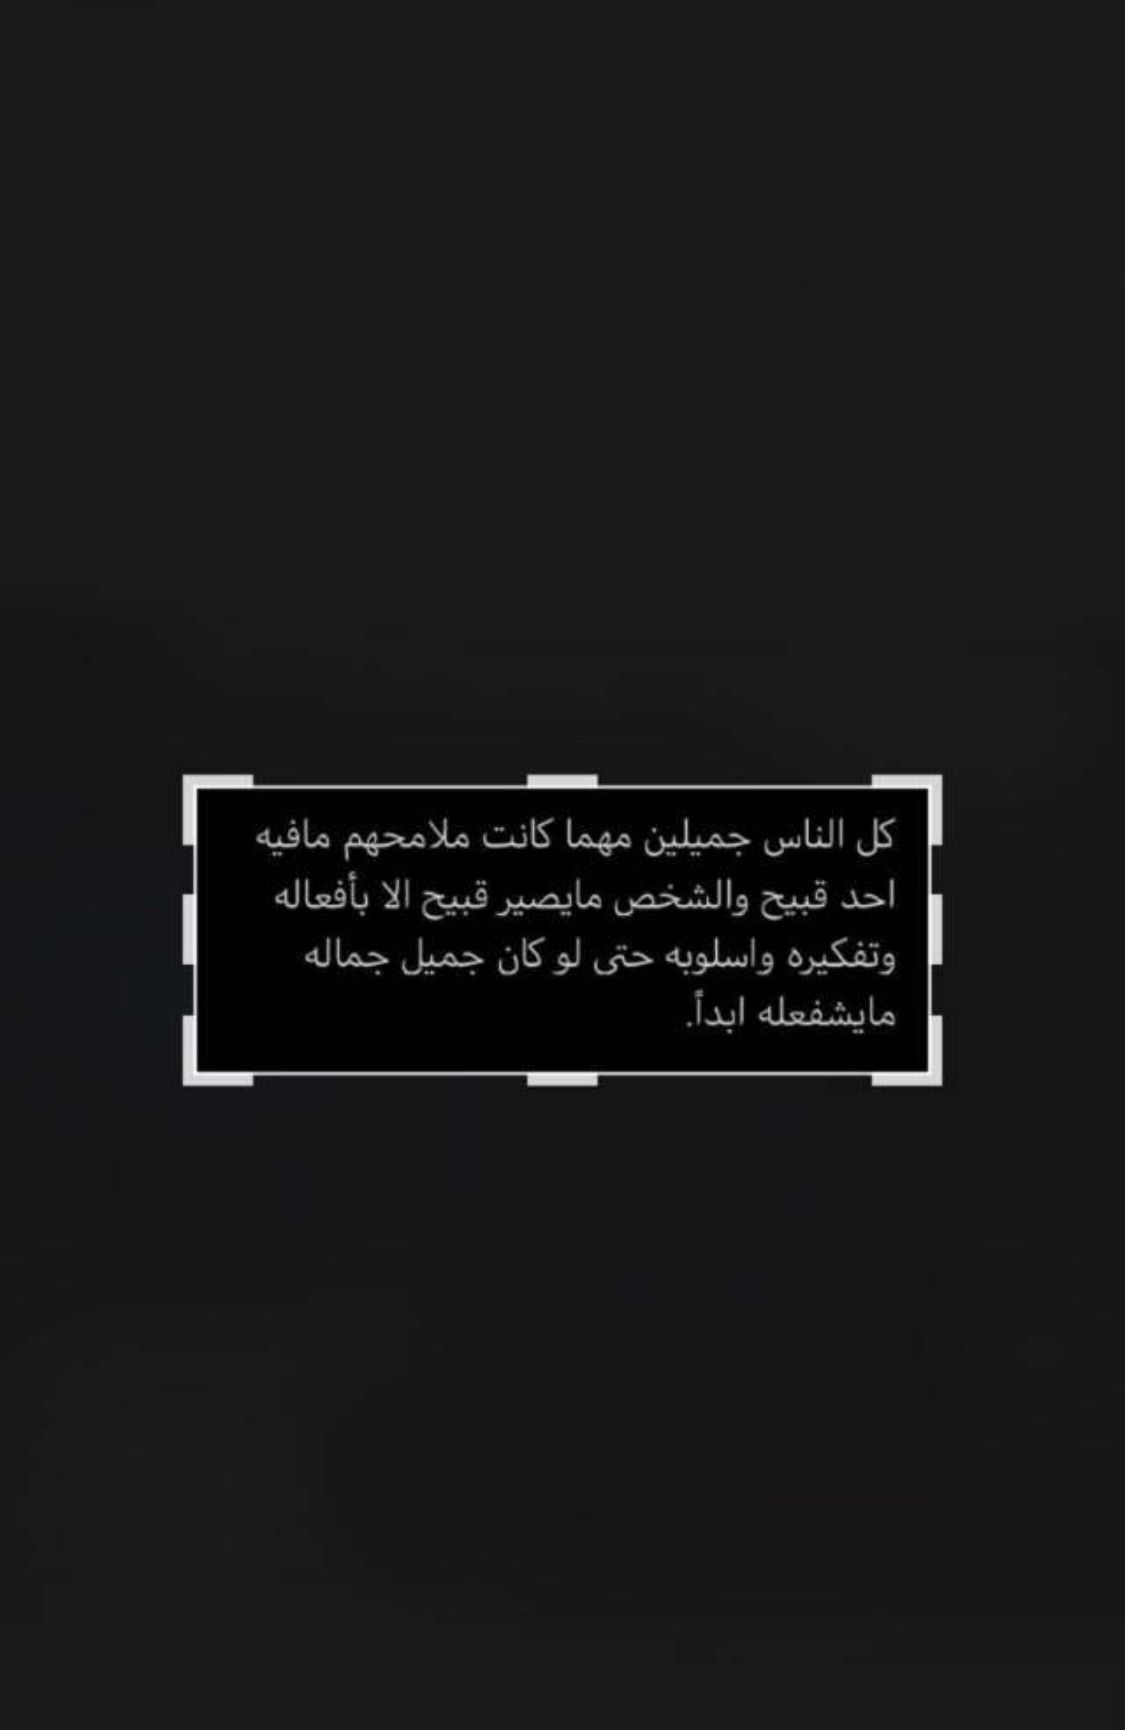 Pin By هبه محمد On م ـخت ـاراتي Words Quotes Mood Quotes Life Quotes